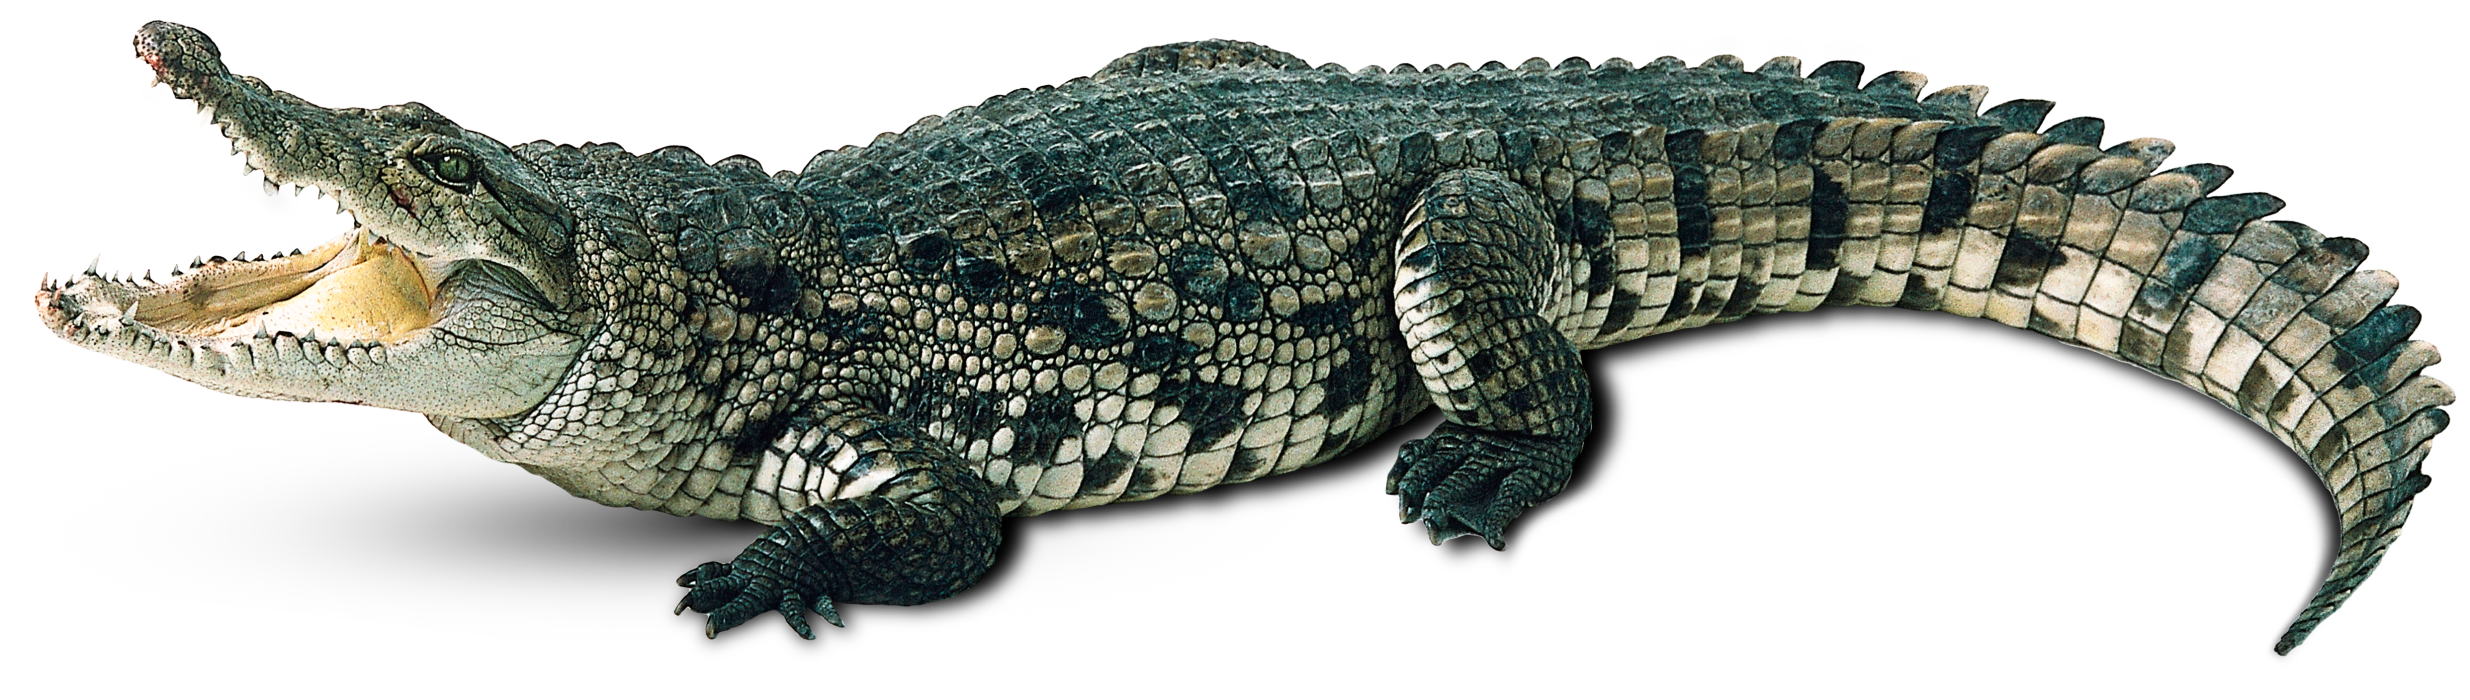 Clipart hippo crocodile. Free png image animals